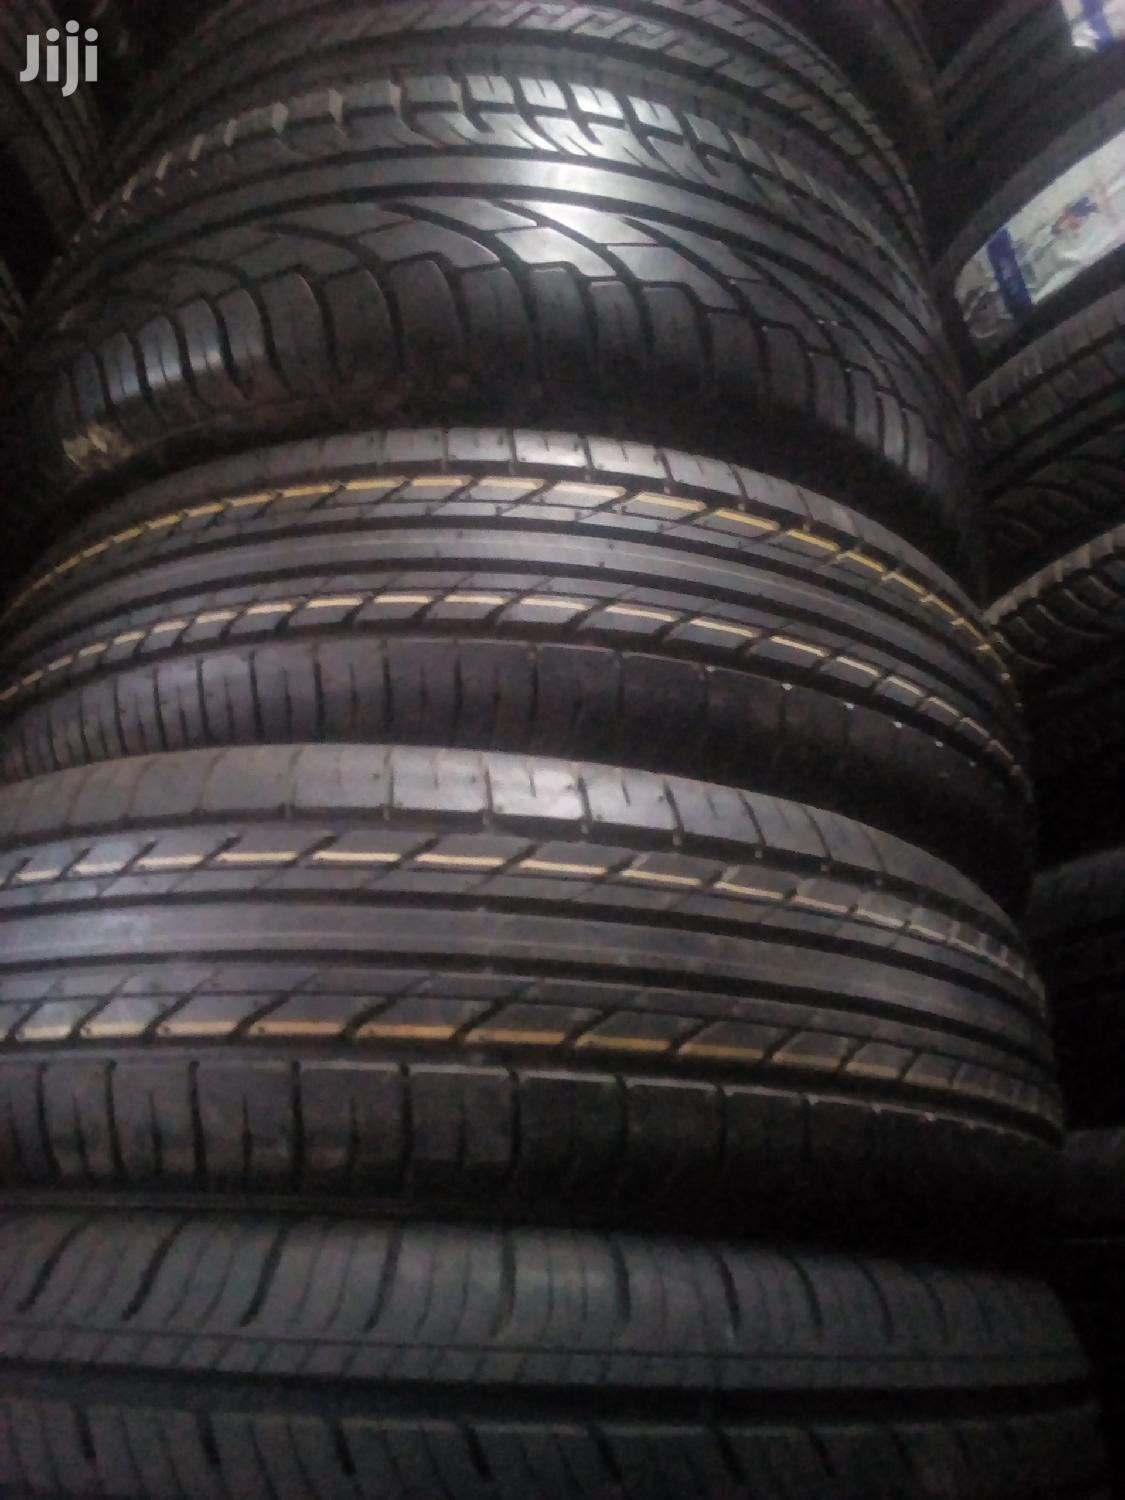 Good Price Tyres For Your Csrs